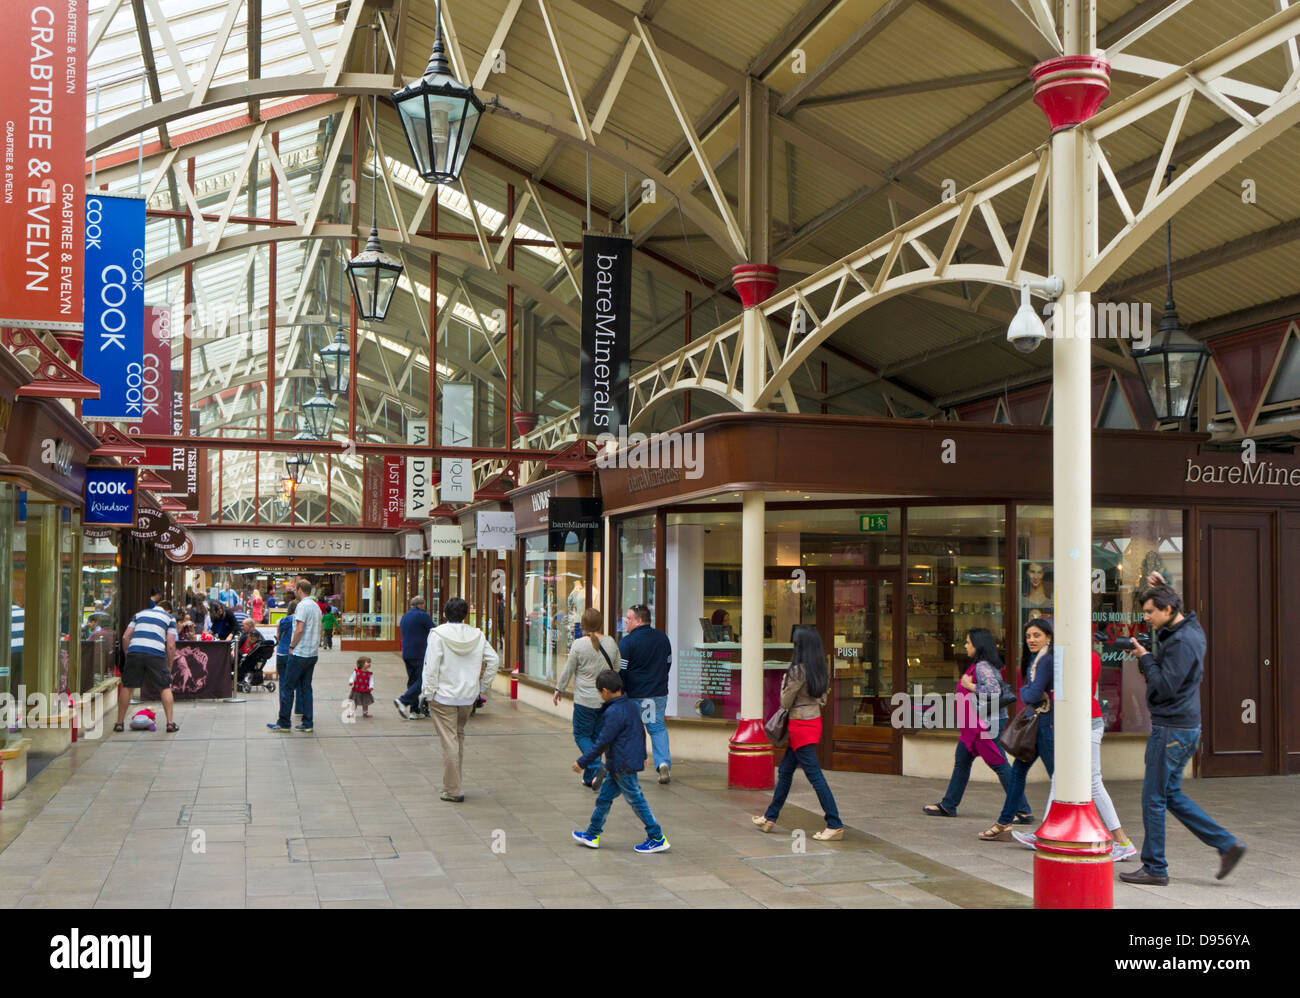 Windsor Royal Shopping centre in the converted grade II listed Victorian Railway Station Windsor Berkshire England - Stock Image